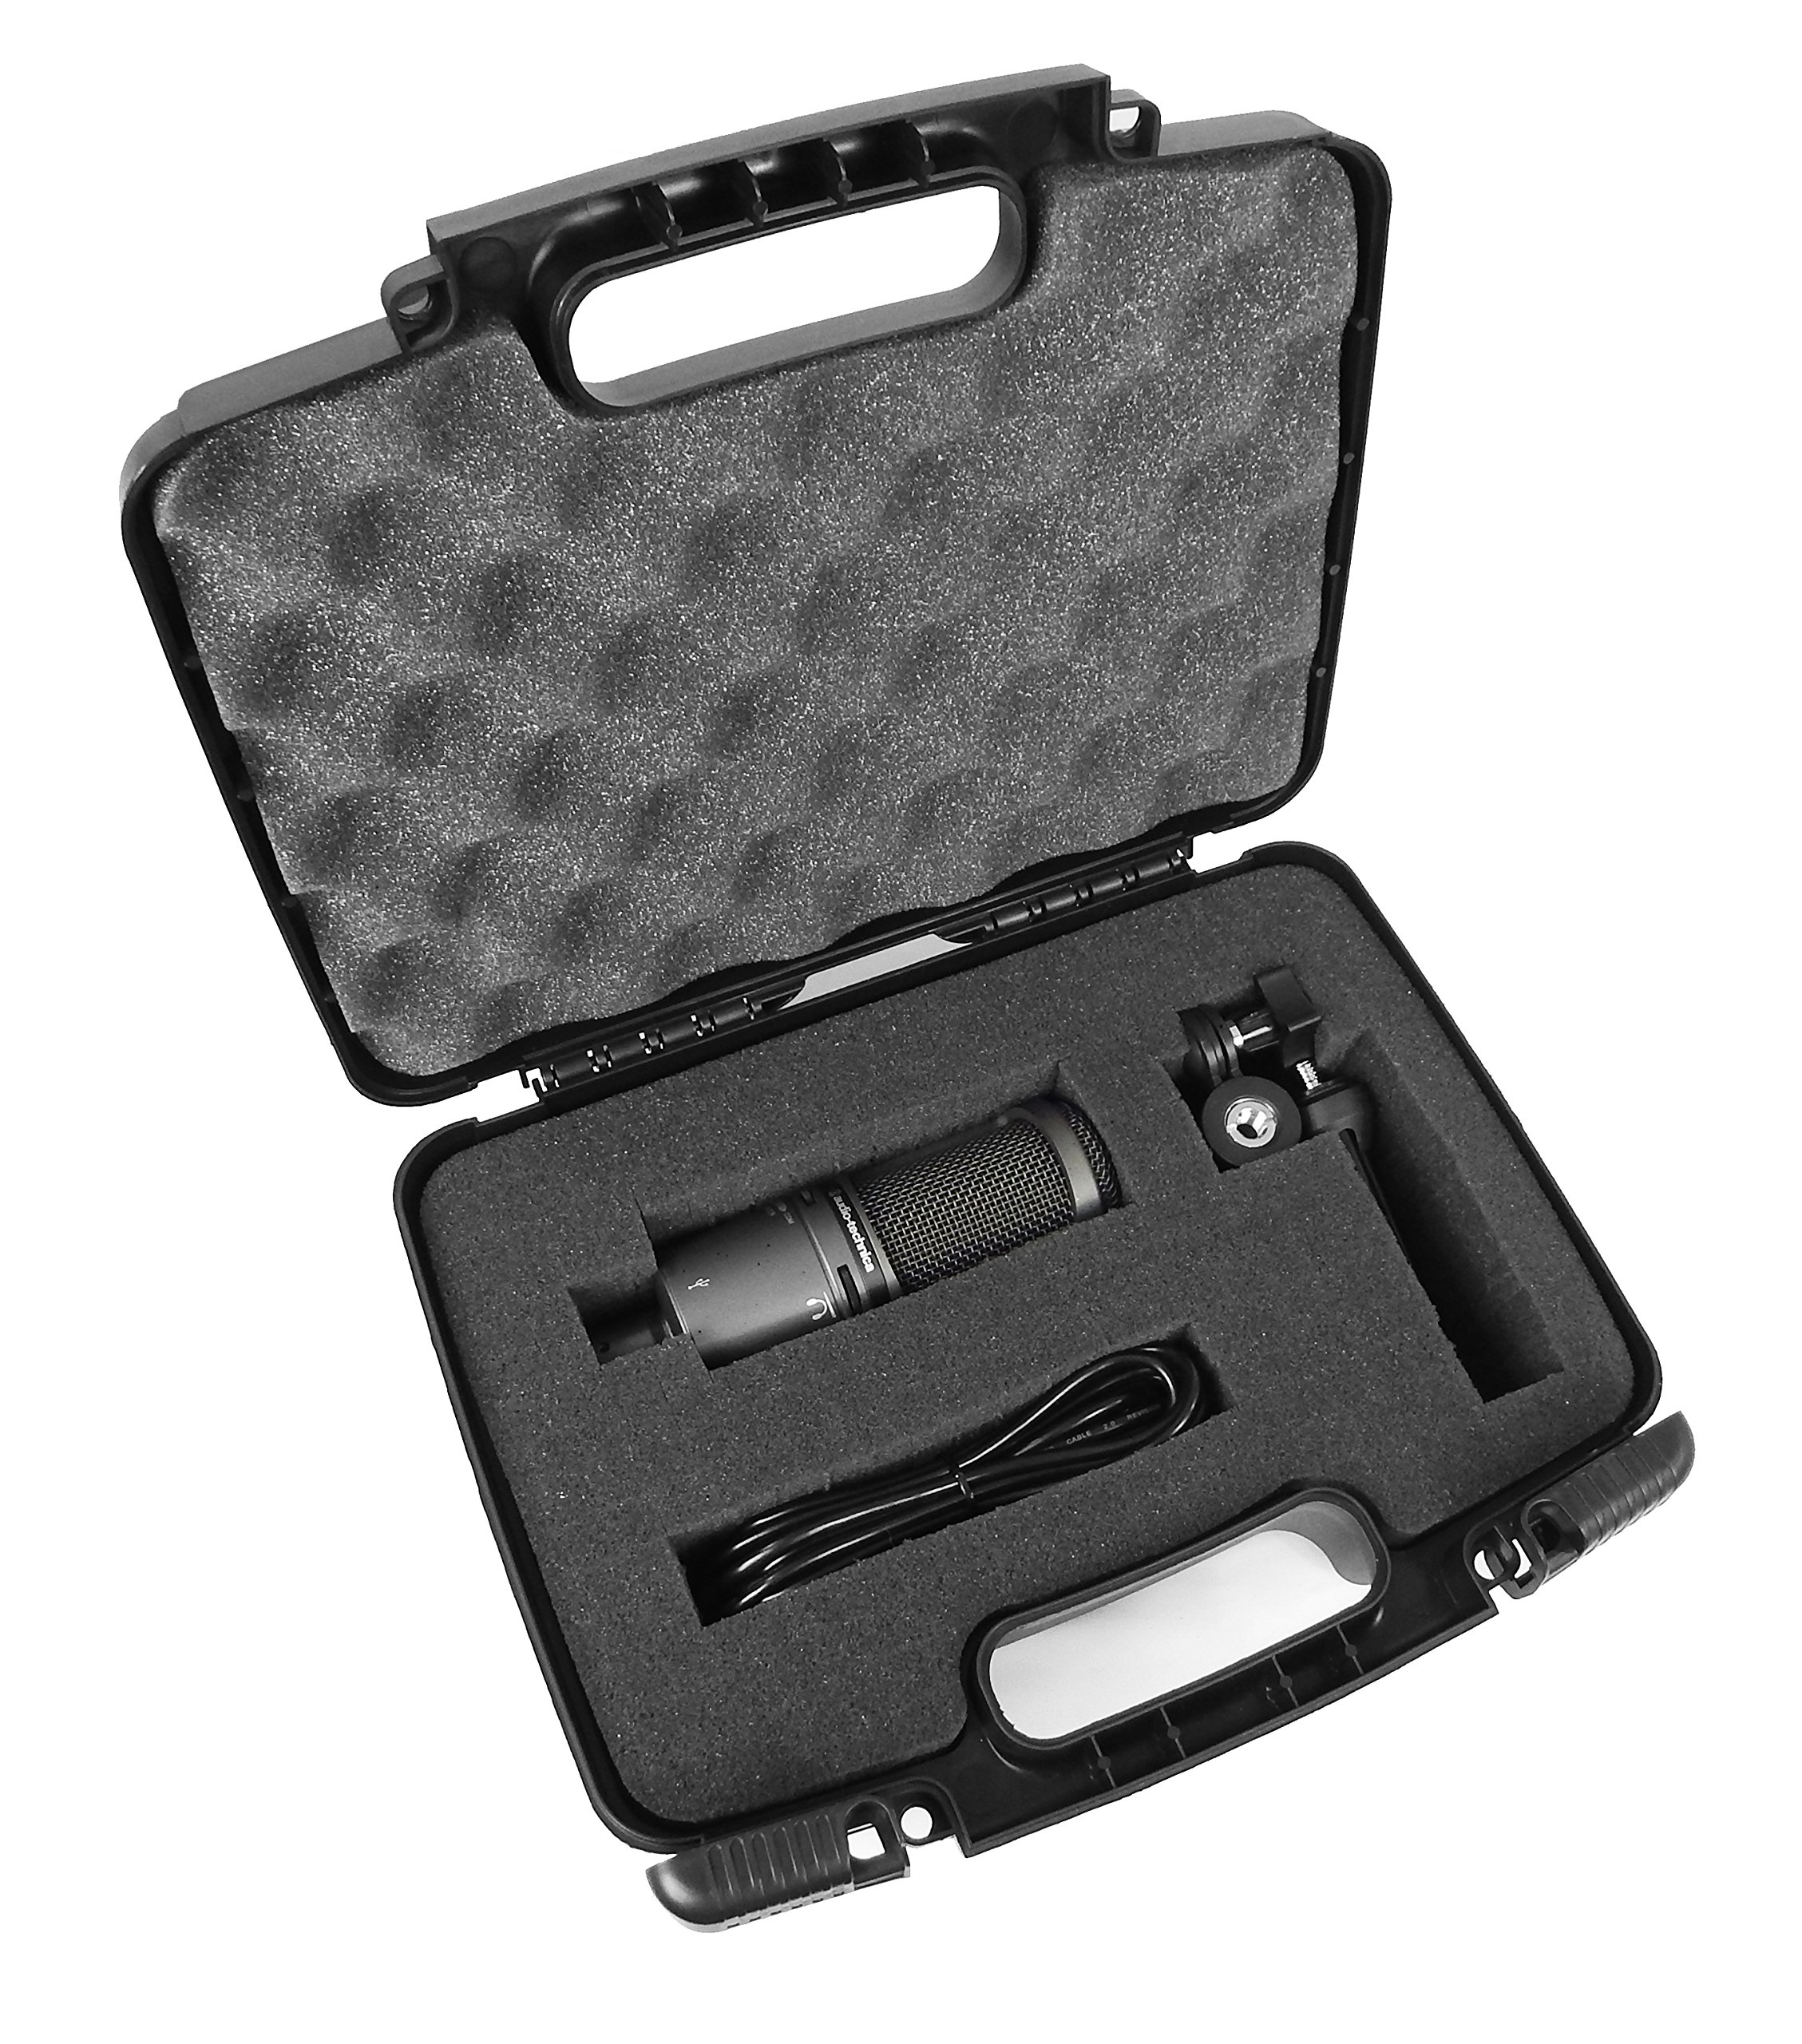 TOUGH Condenser Microphone Hard Case with Dense Foam for MXL Microphones - Fits MXL 770 / 990 / 550 , 551R / 440 / 4000 / MCA-SP1 / MXL USB 006 , USB 008 , USB 009 , MXL Studio 24 USB / V67G / V87 / V250 / V69MEDT - Fits Microphone and Accessories by Distro-Tech (Image #1)